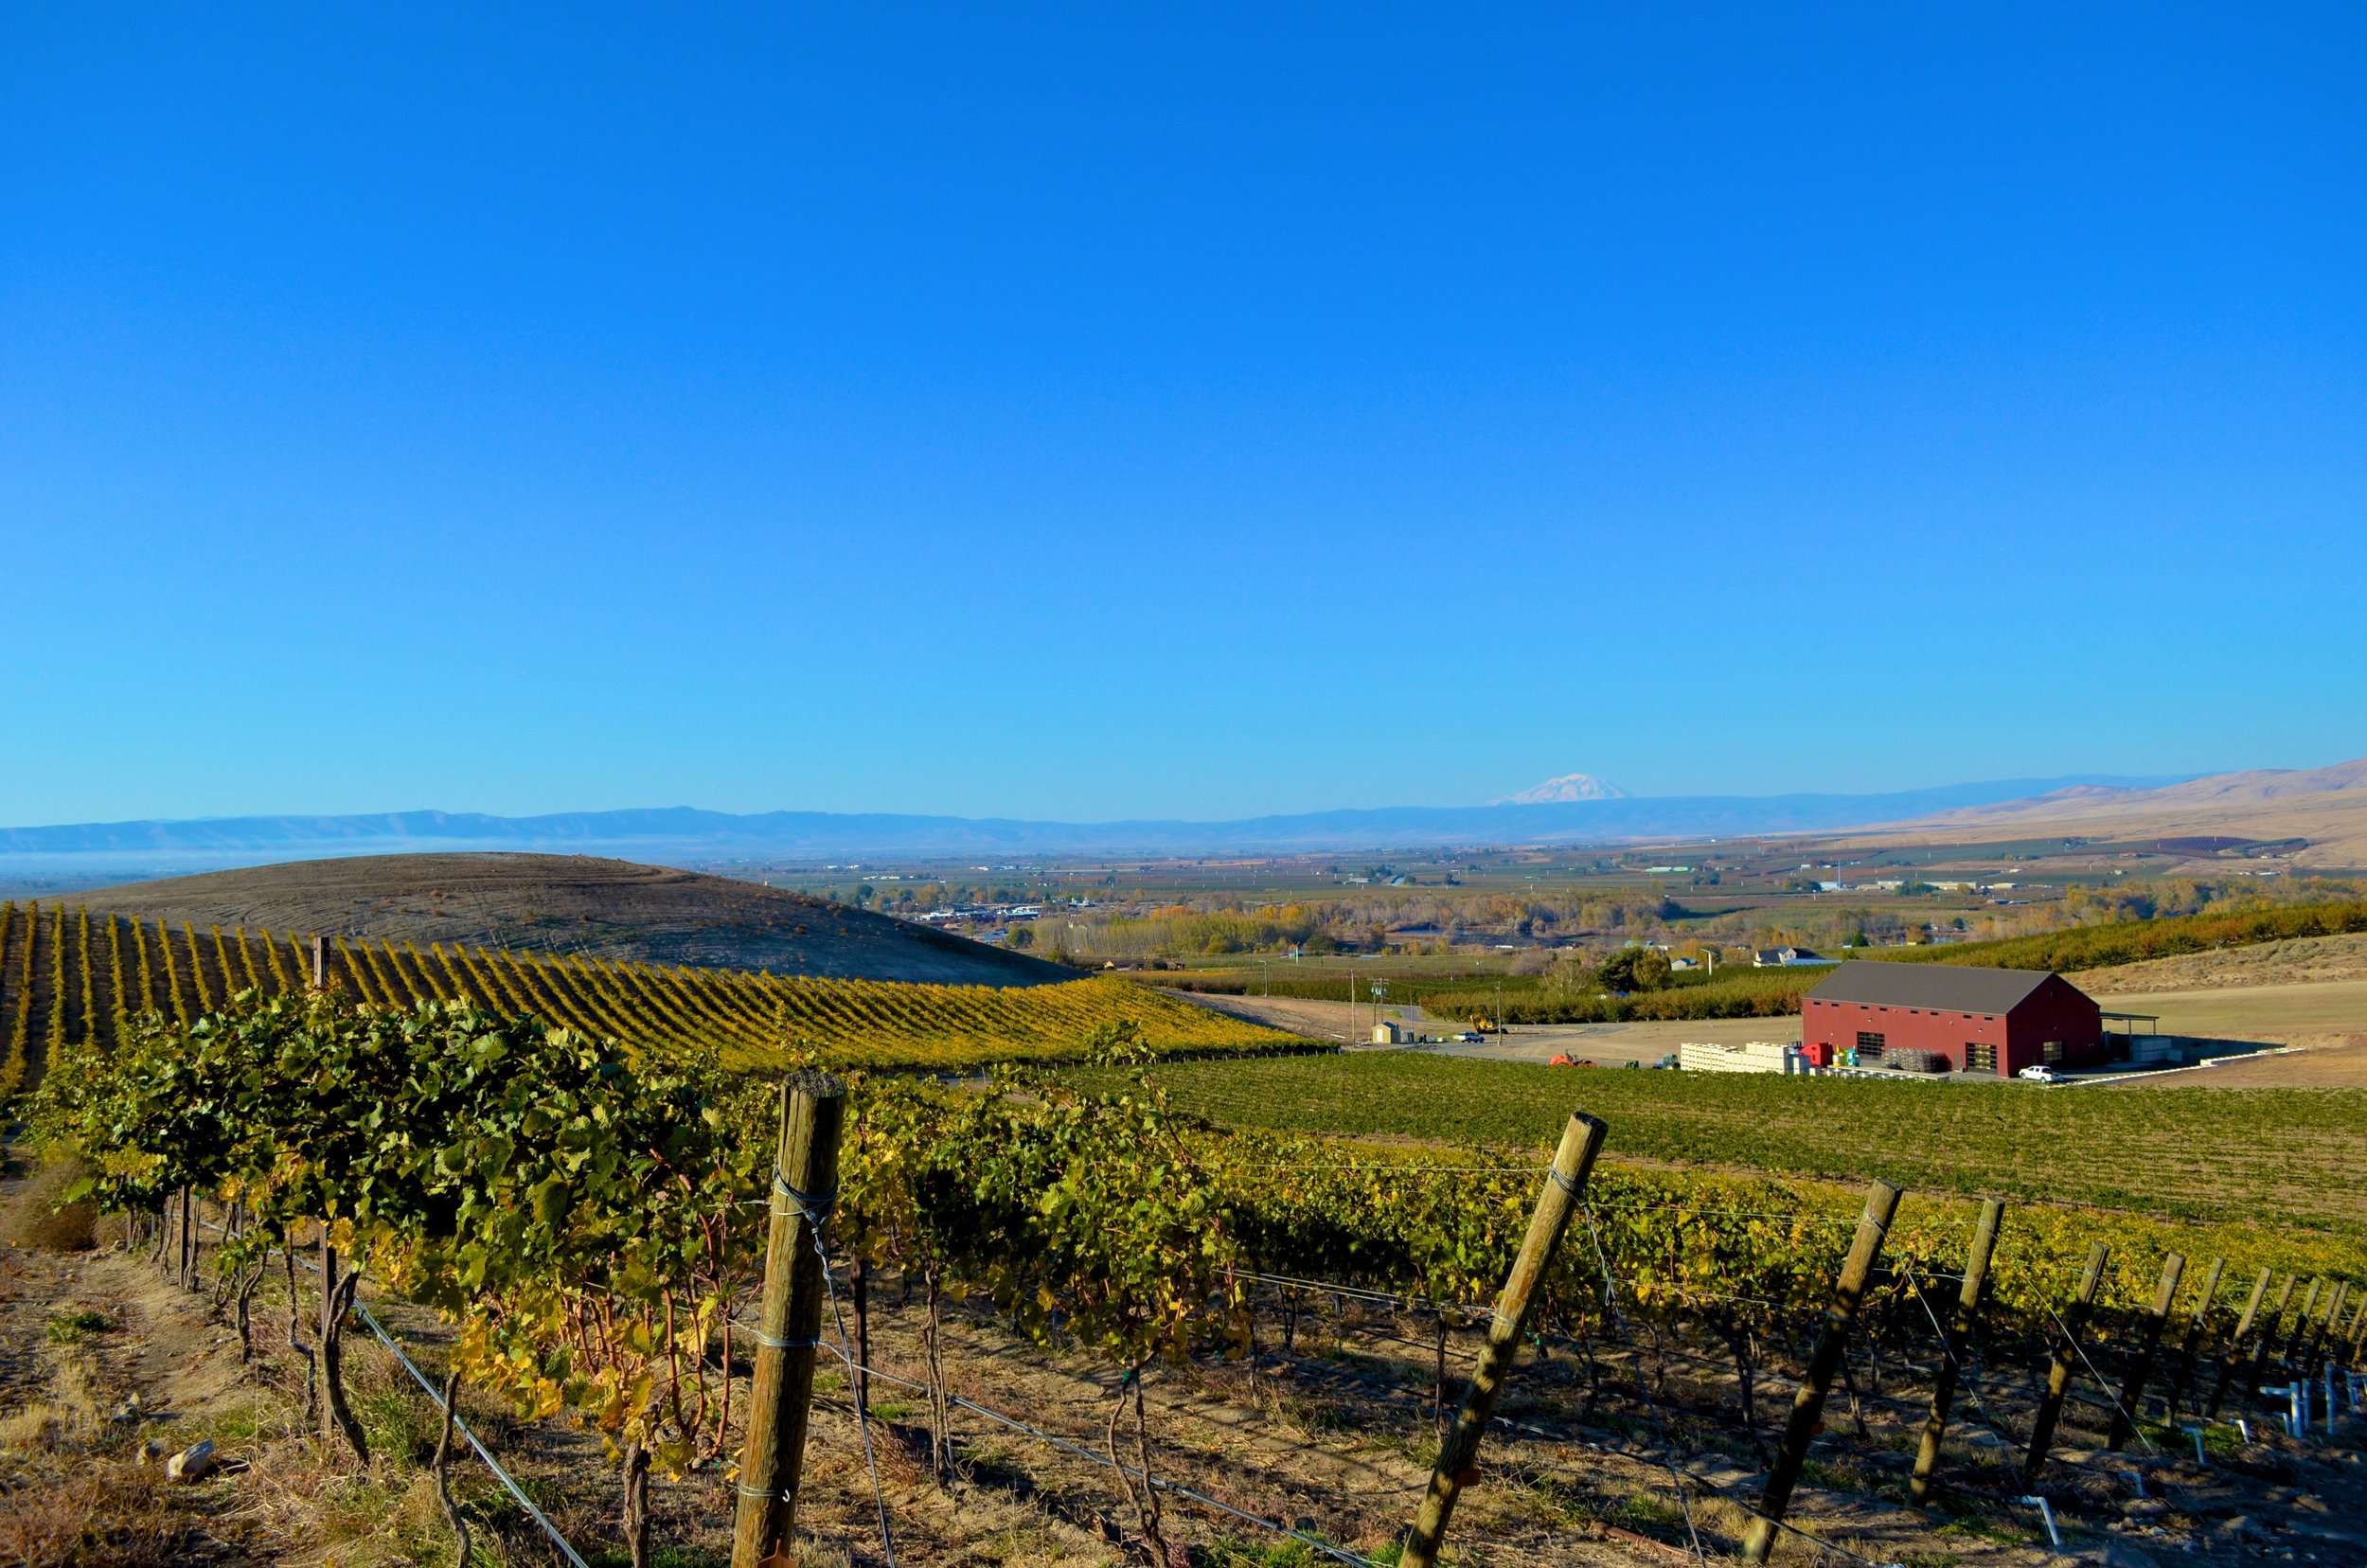 Owen Roe's new winery and vineyard in the Yakima Valley. Courtesy of Wine Yakima Valley.